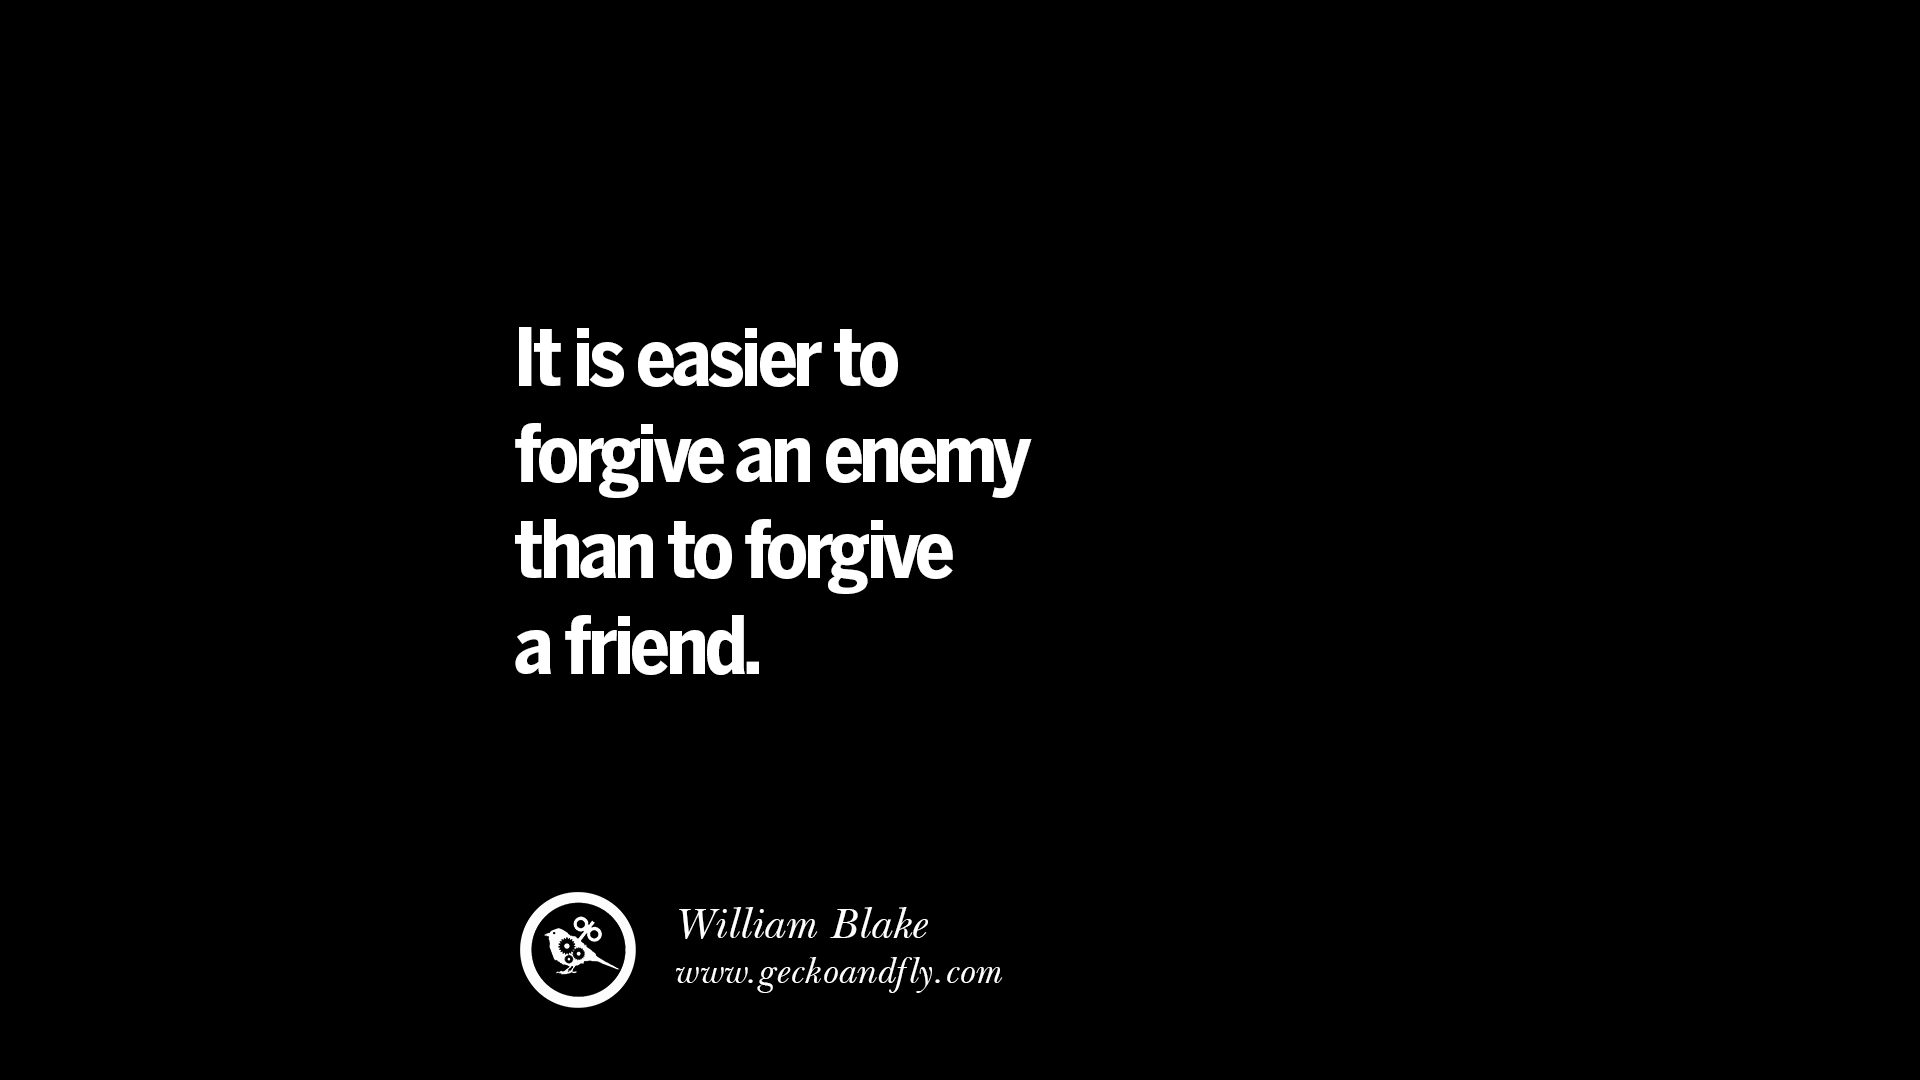 Funny Quote About Friendship 25 Quotes On Friendship Trust Love And Betrayal  Geckoandfly 2018